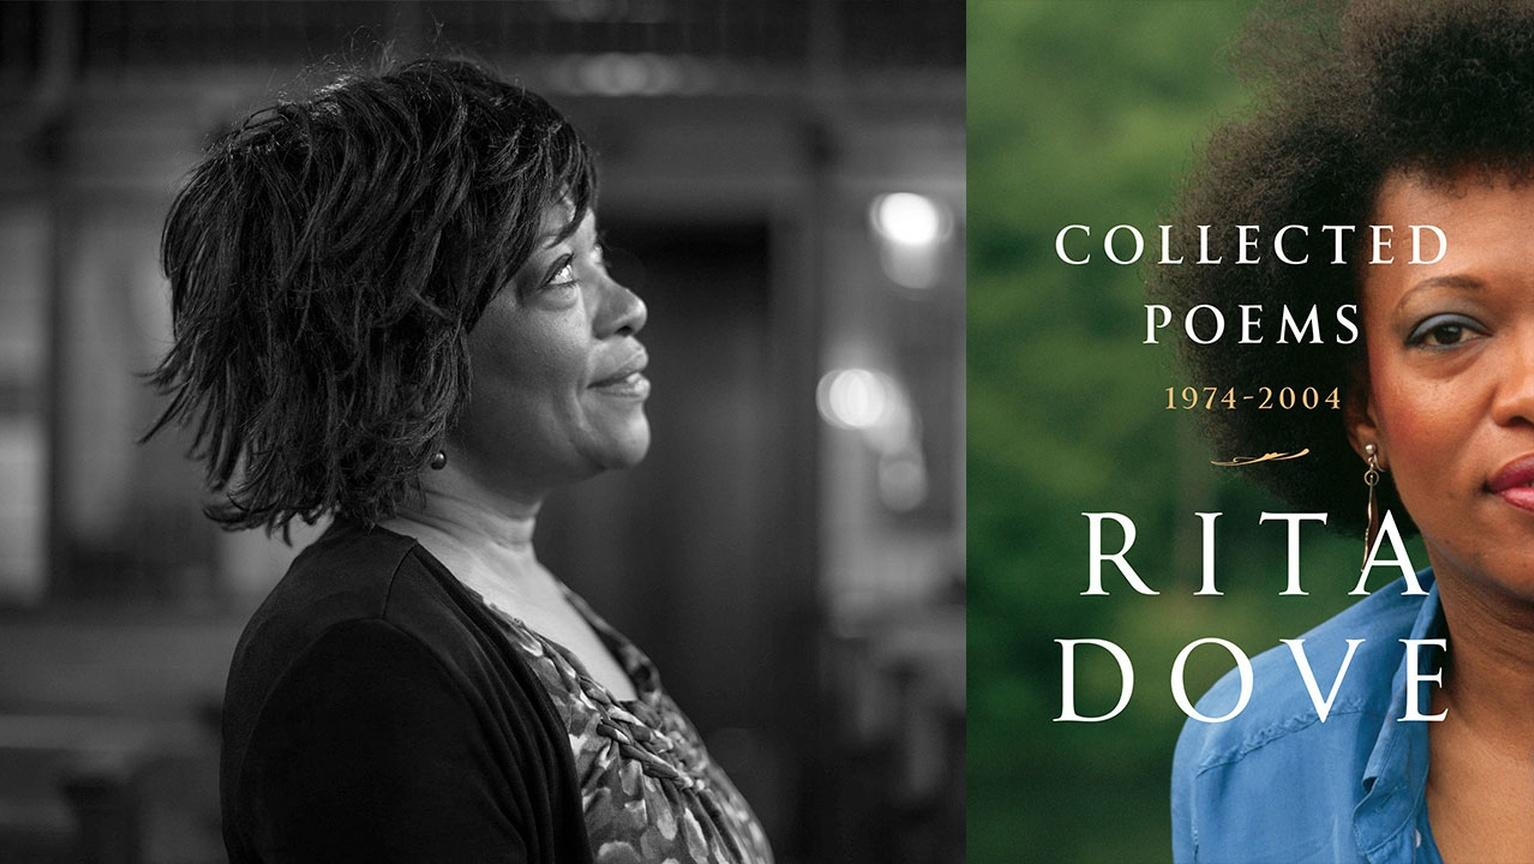 second hand man rita dove essays and term papers I think it's the excitement only a free man can feel, a free man at the start of a long journey whose conclusion is uncertain i hope i can make it across the border i hope to see my friend and shake his hand.